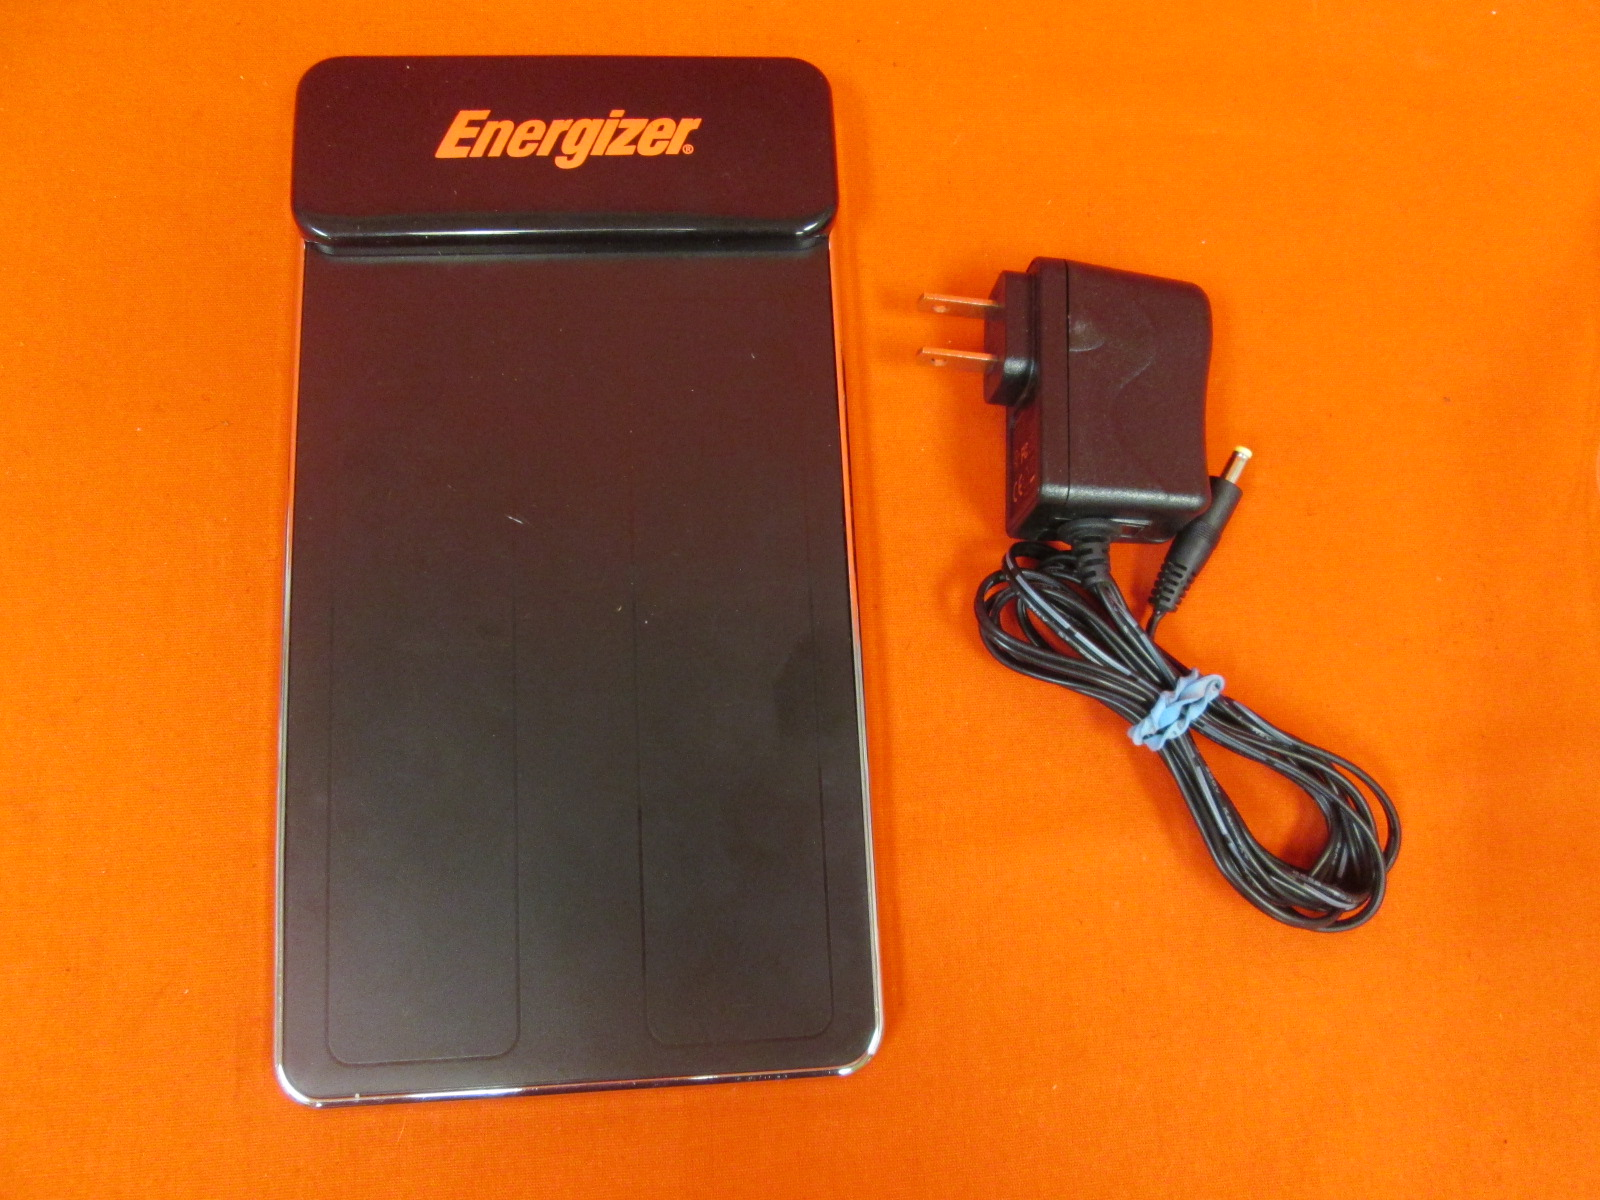 Energizer Flat Panel 2X Induction Charger For Wii